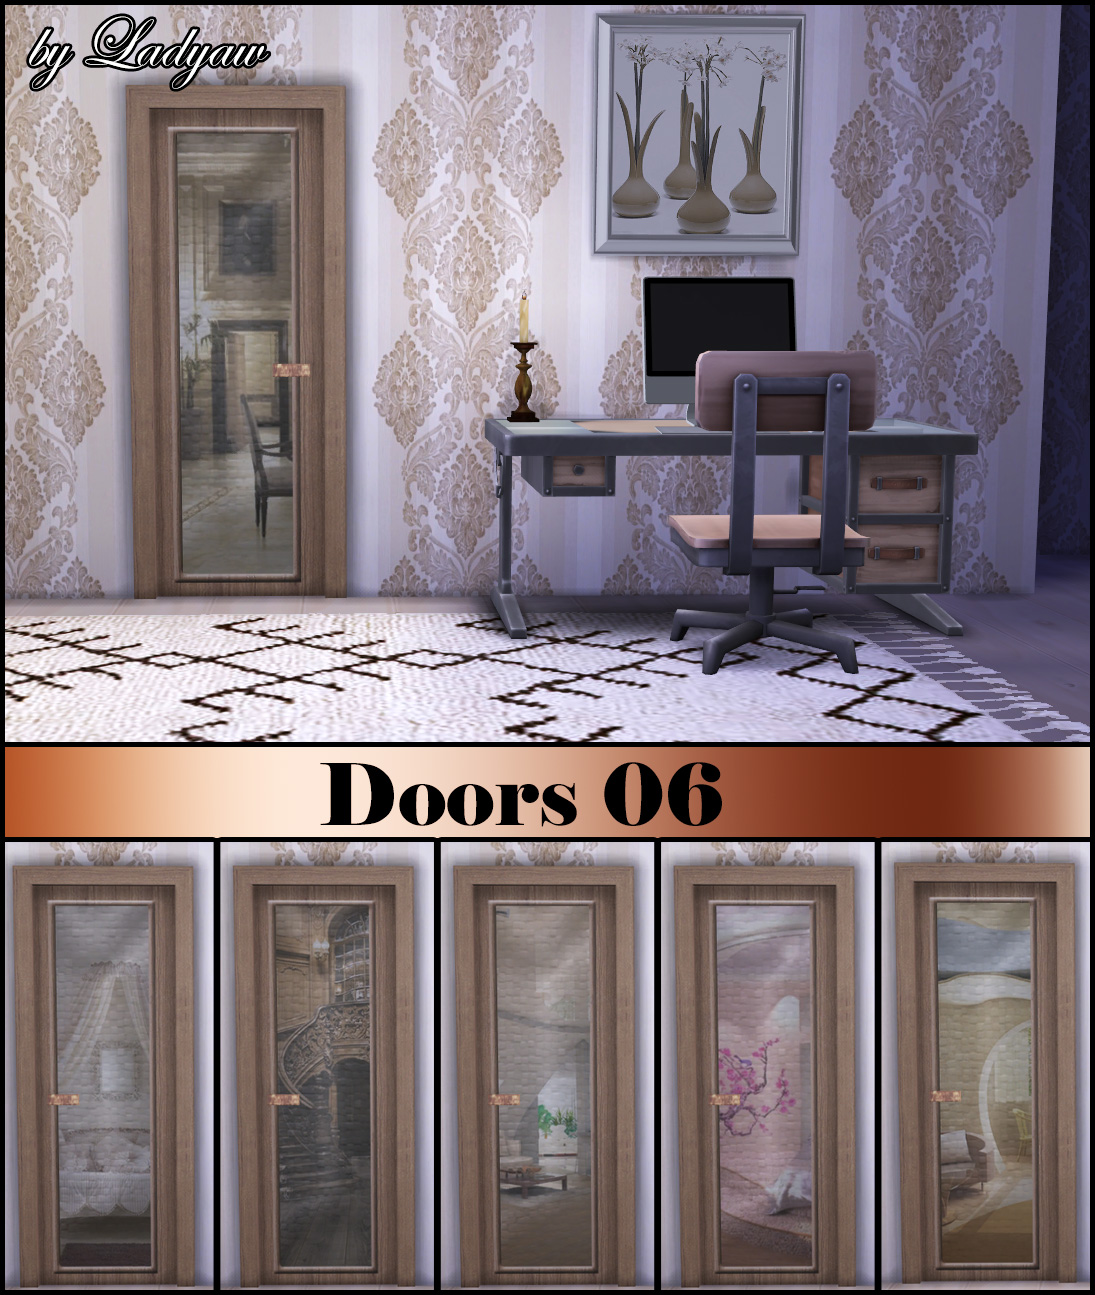 Doors 06 by Ladyaw